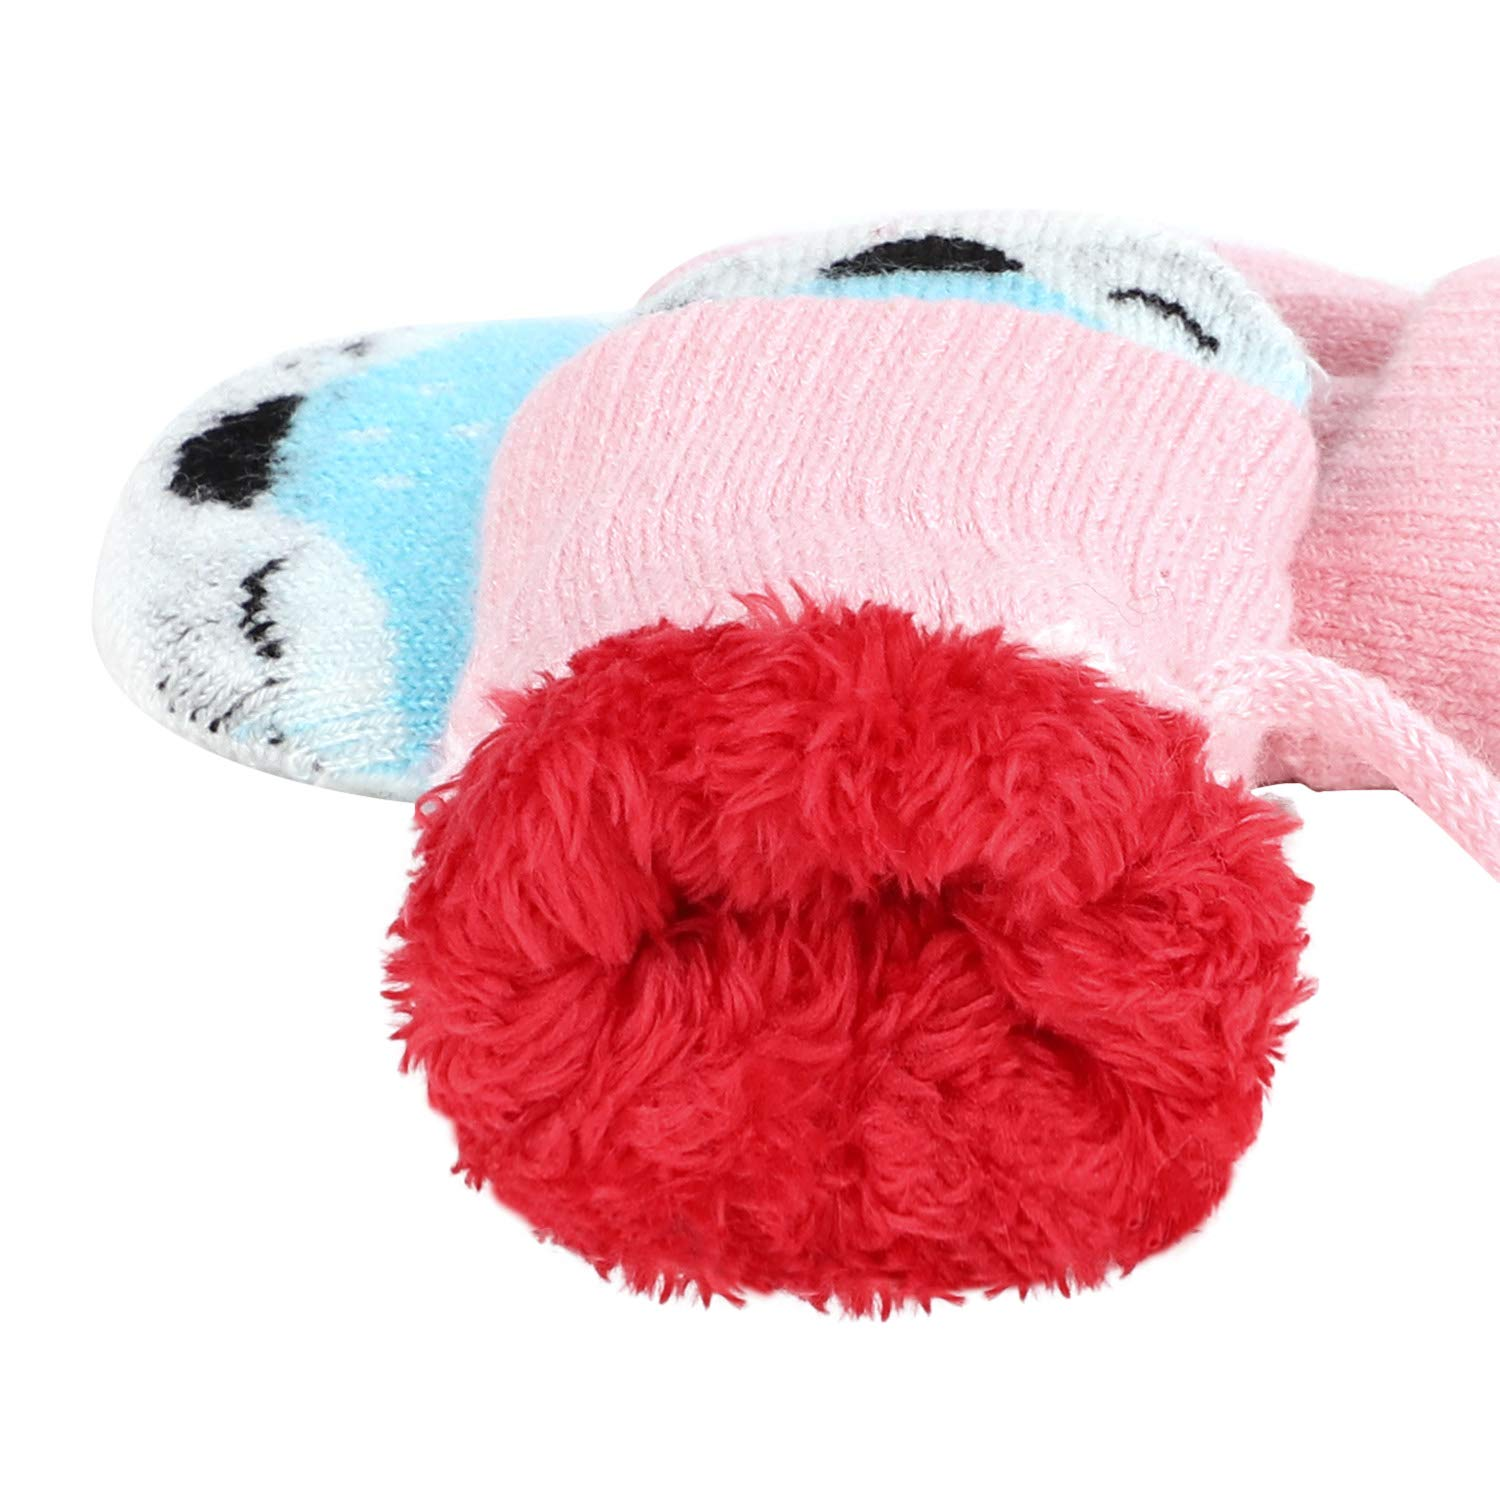 JINTN Boys Girls Cartoon Fox Winter Warm Gloves Knitted Hanging Neck Mitten with Rope Toddler Full Finger Glove Kids Hand Warmer Outdoor Thermal Mitten Children Xmas Gifts for 0-3 Years Old